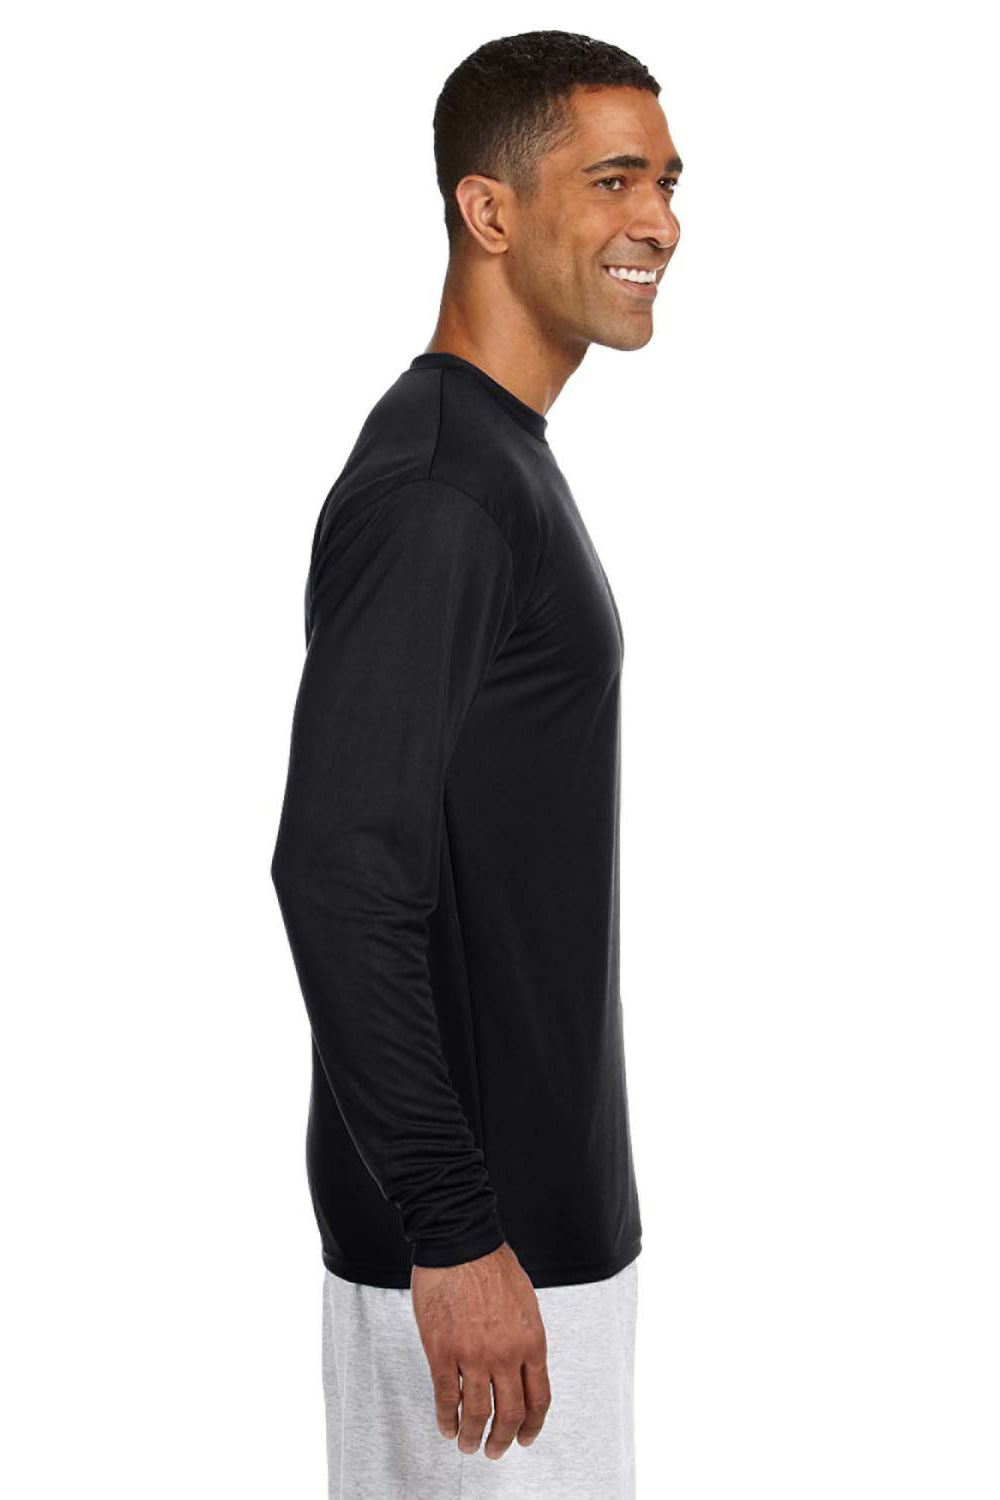 A4 N3165 Mens Cooling Performance Moisture Wicking Long Sleeve Crewneck T-Shirt Black Side